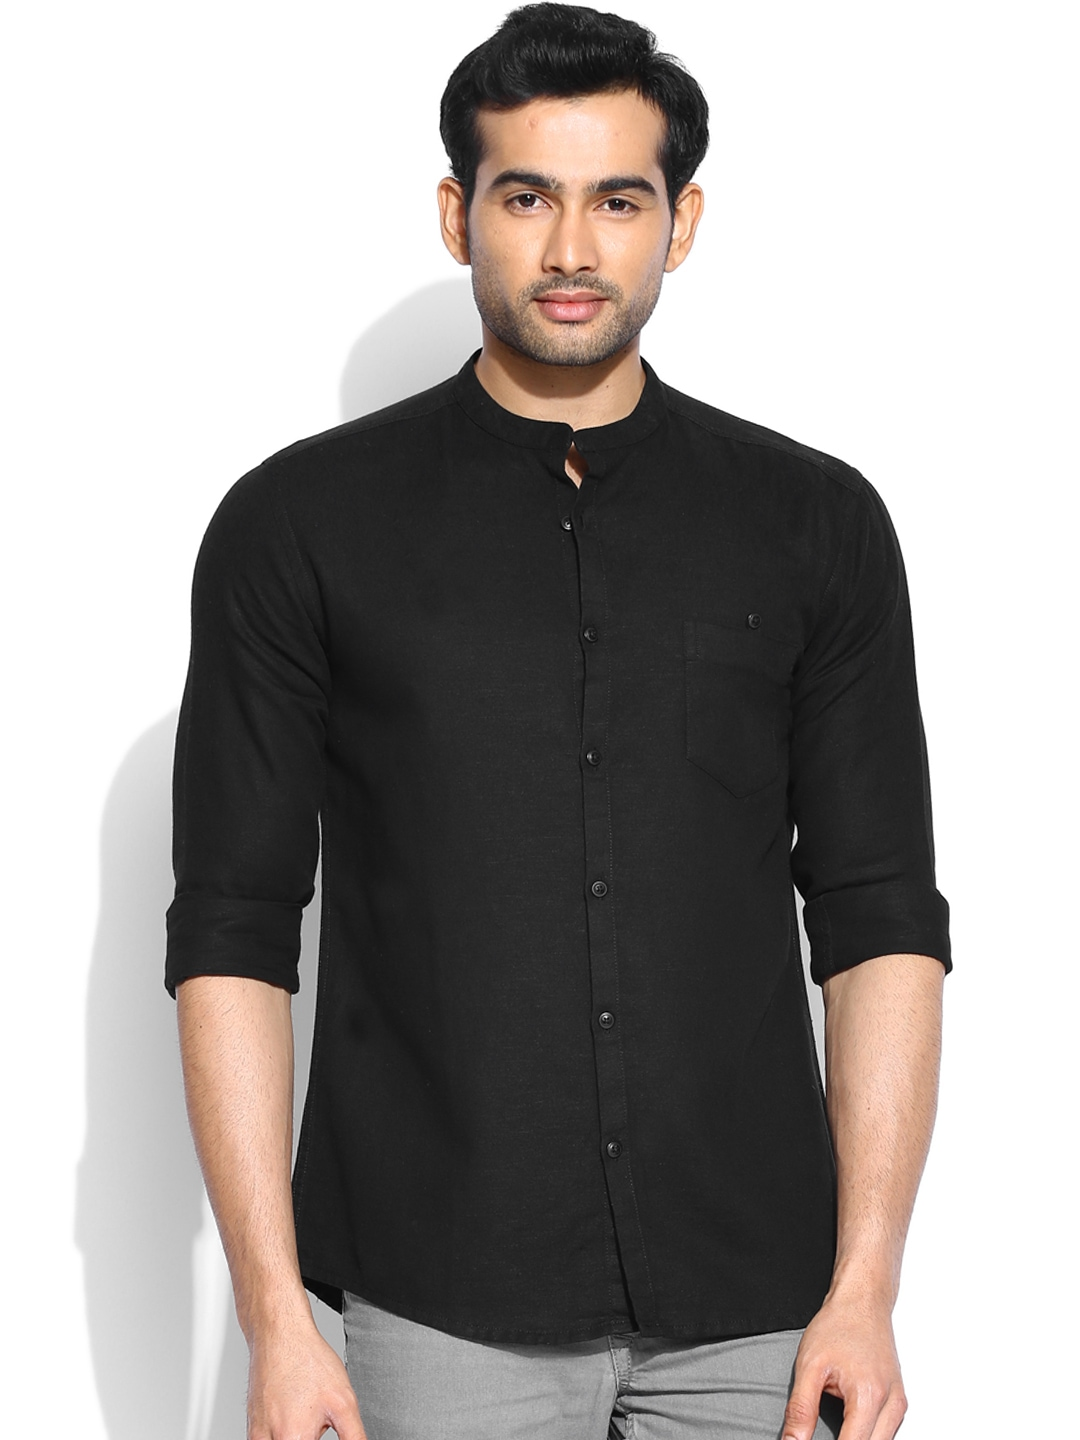 Find mens black linen shirts at ShopStyle. Shop the latest collection of mens black linen shirts from the most popular stores - all in one place.